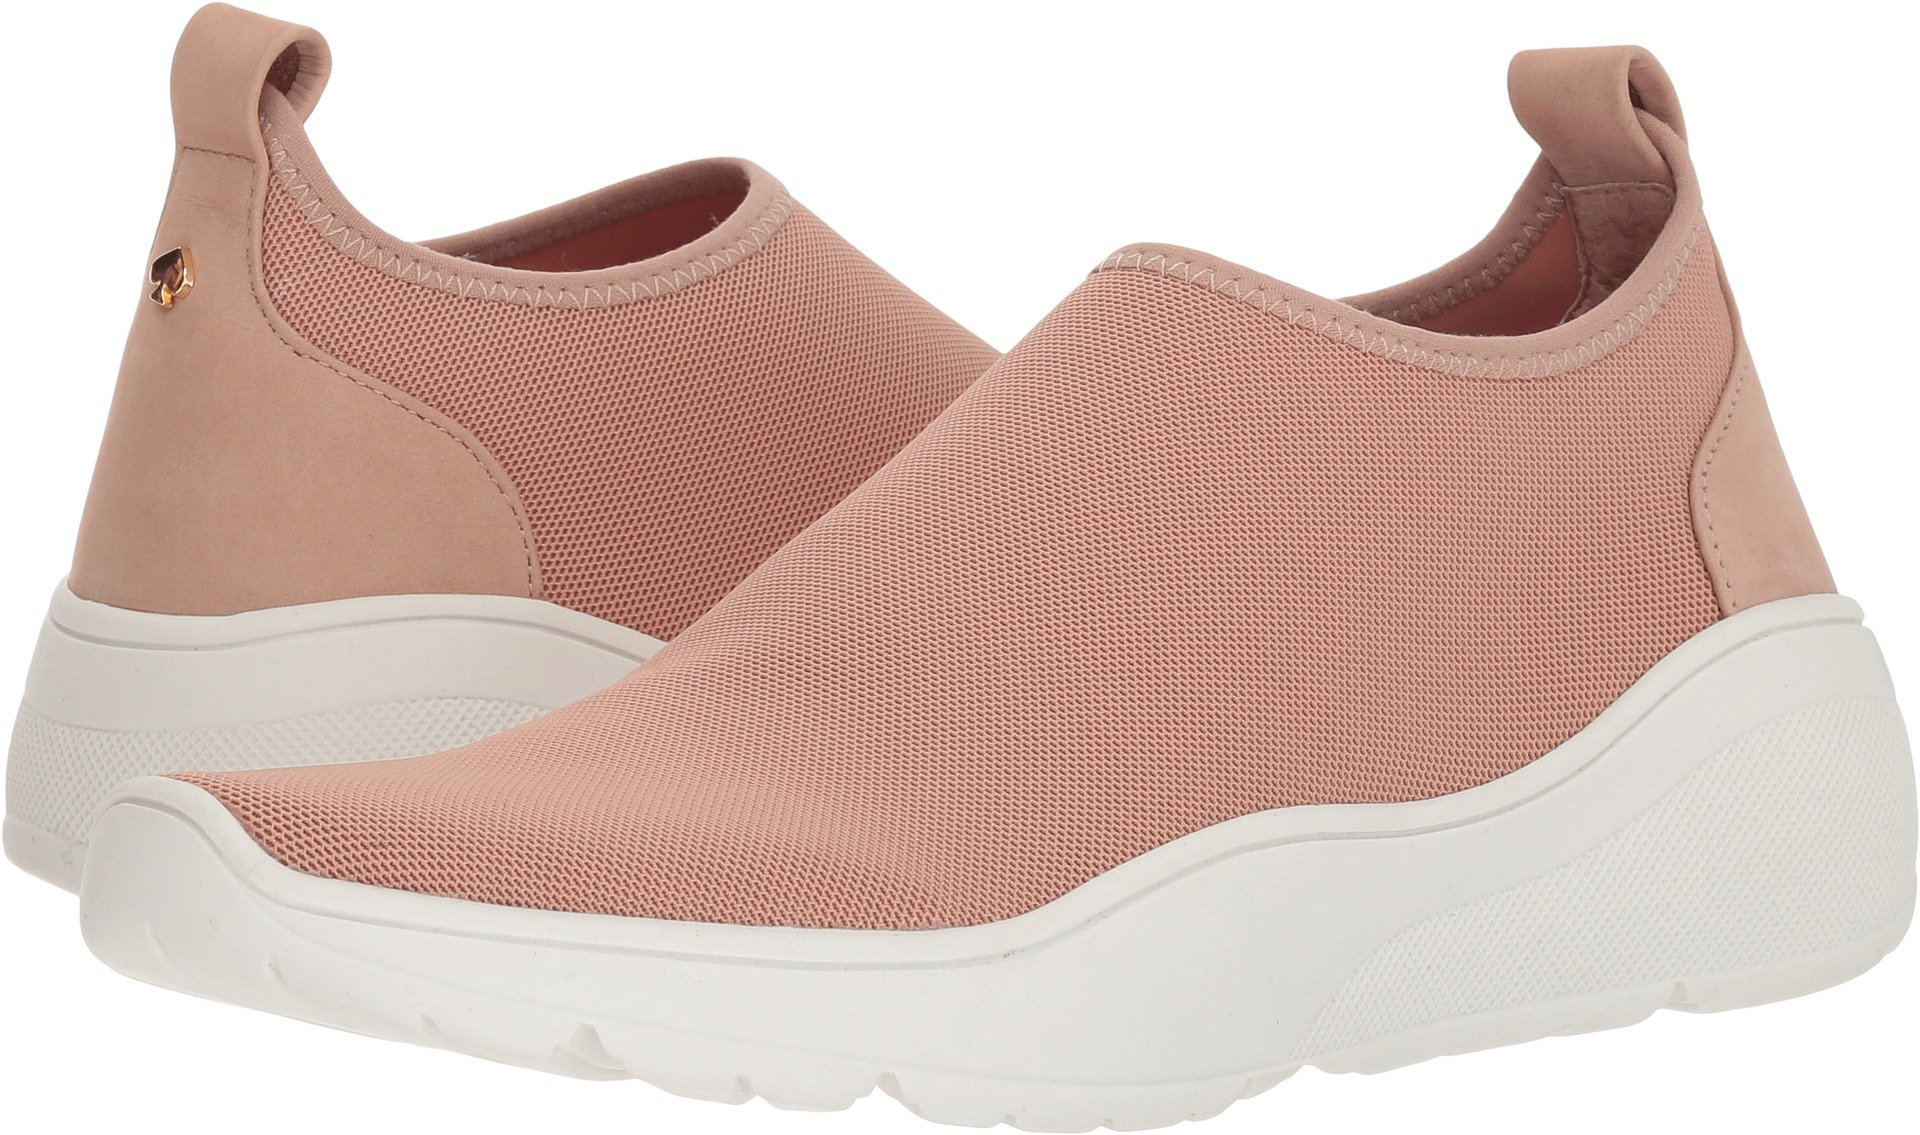 Kate Spade New York Women's Bradlee Sneaker, Blush, 6.5 M US